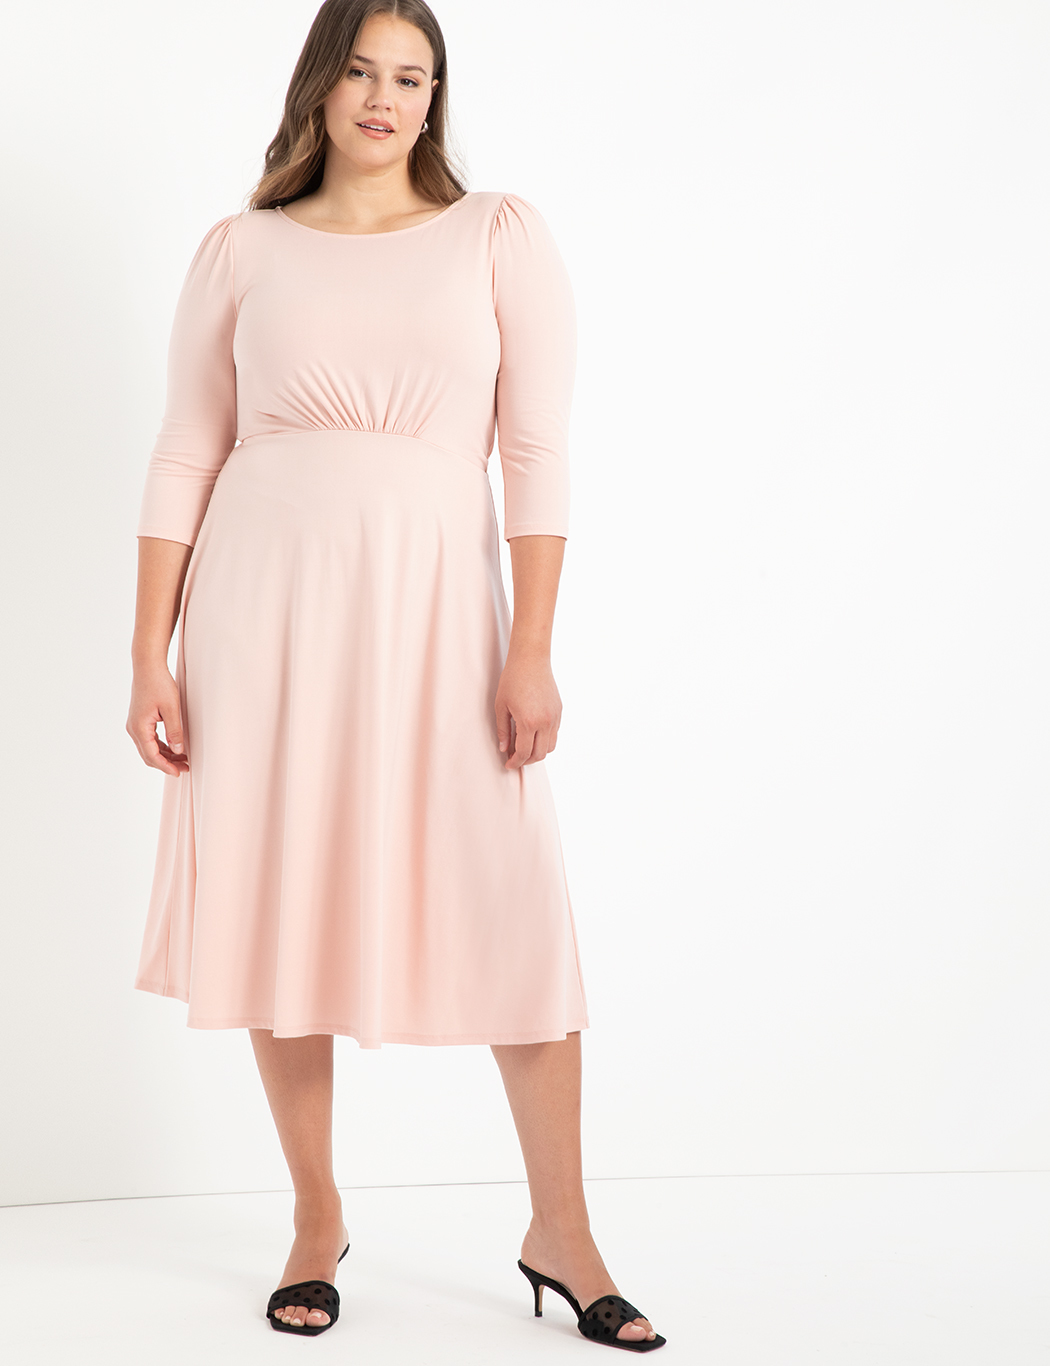 Boat Neck Dress With Back Detail 2